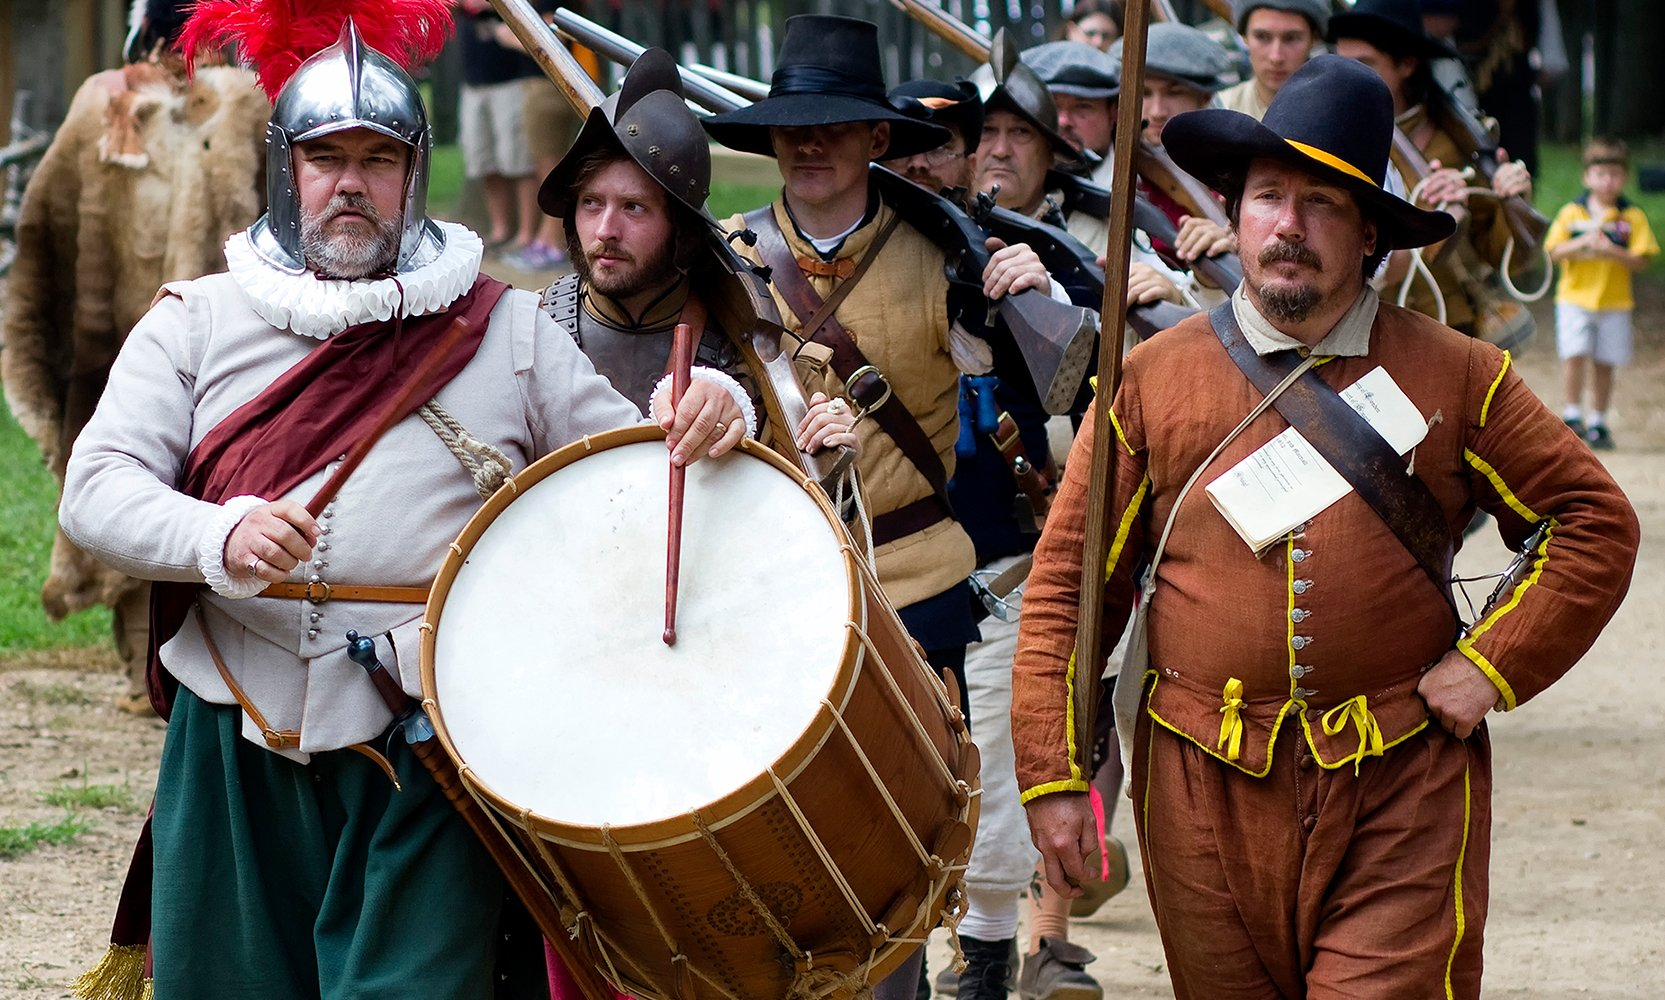 Travel back in time to the Citie of Henricus.